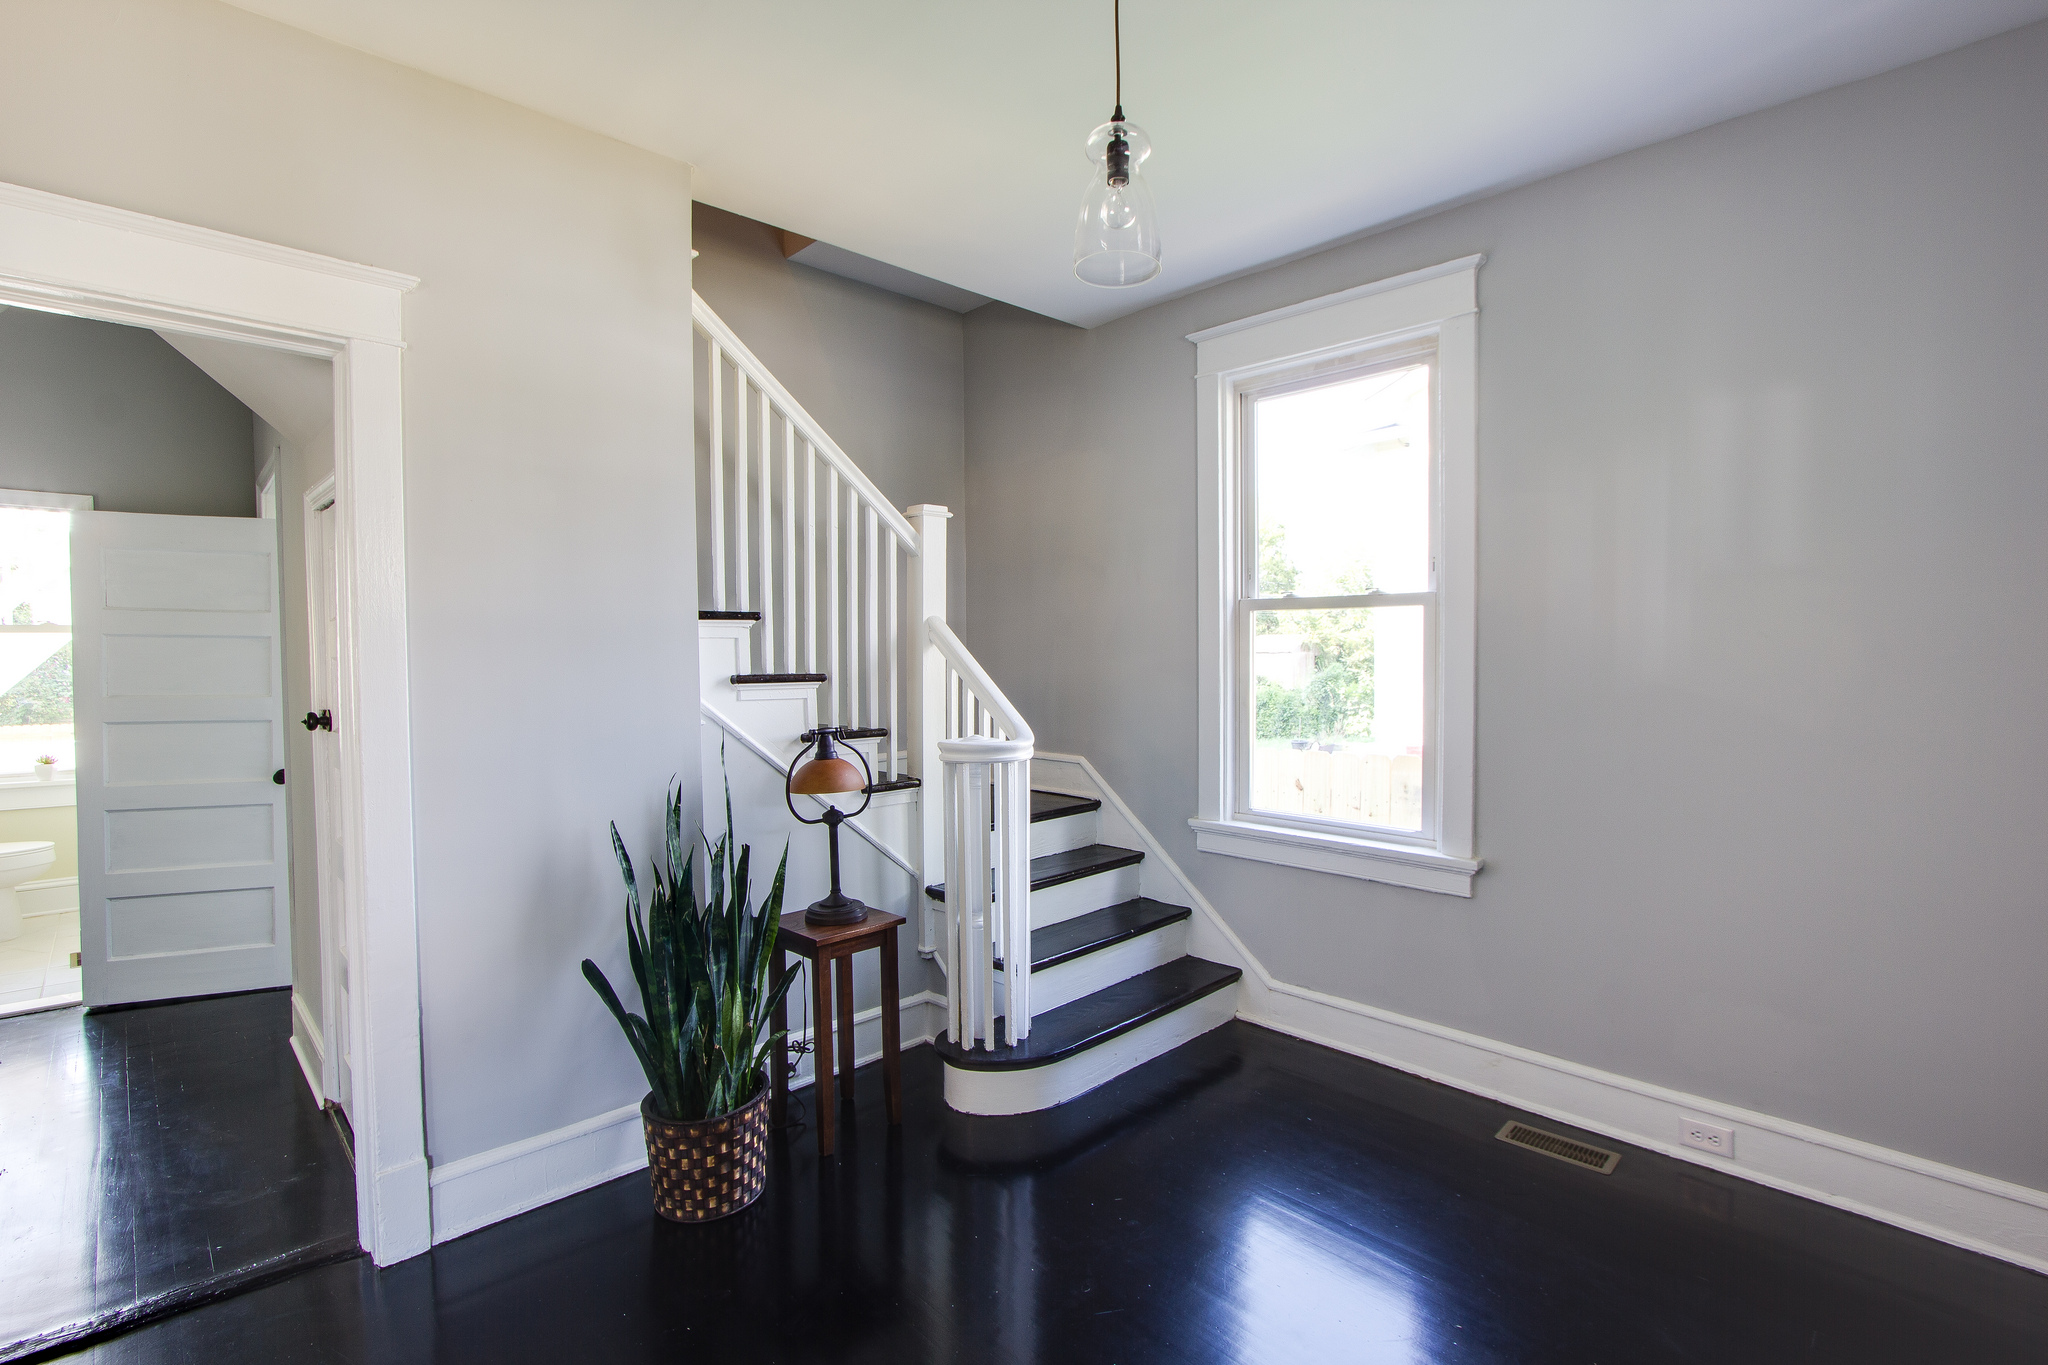 Remodelaholic : Renovating for an Inviting Entryway